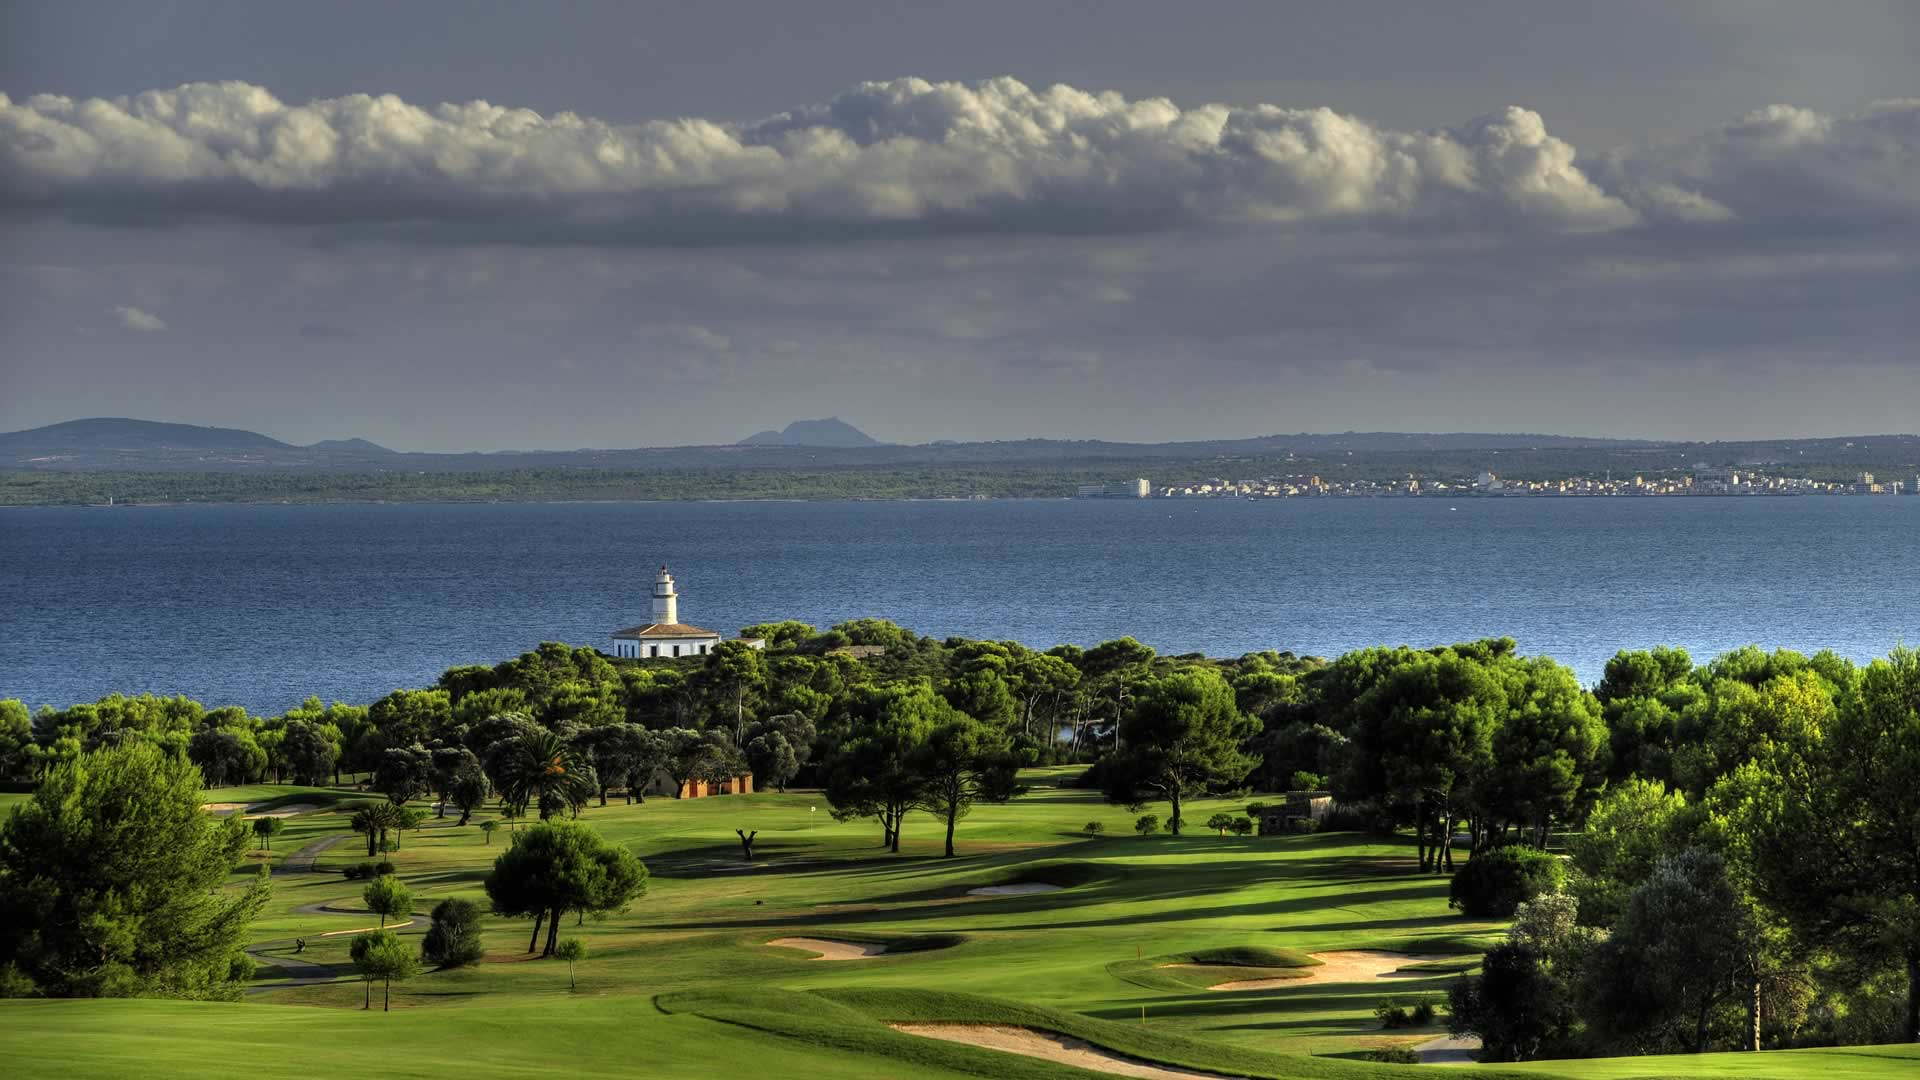 A prime location for some of Europe's finest golf resorts